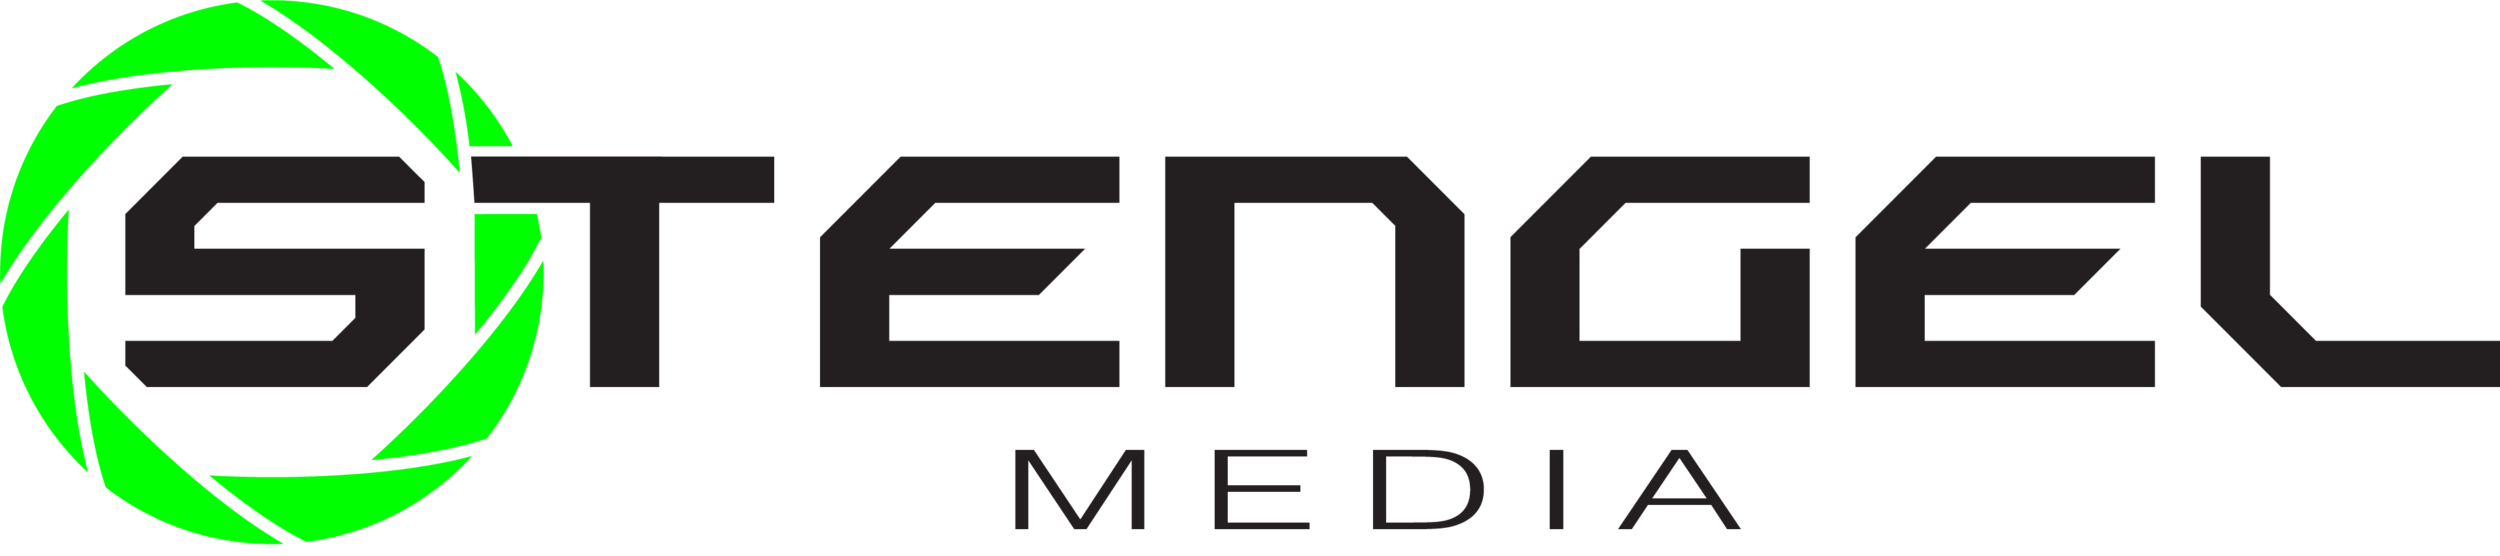 stengel_media_logo_green_transparent.png